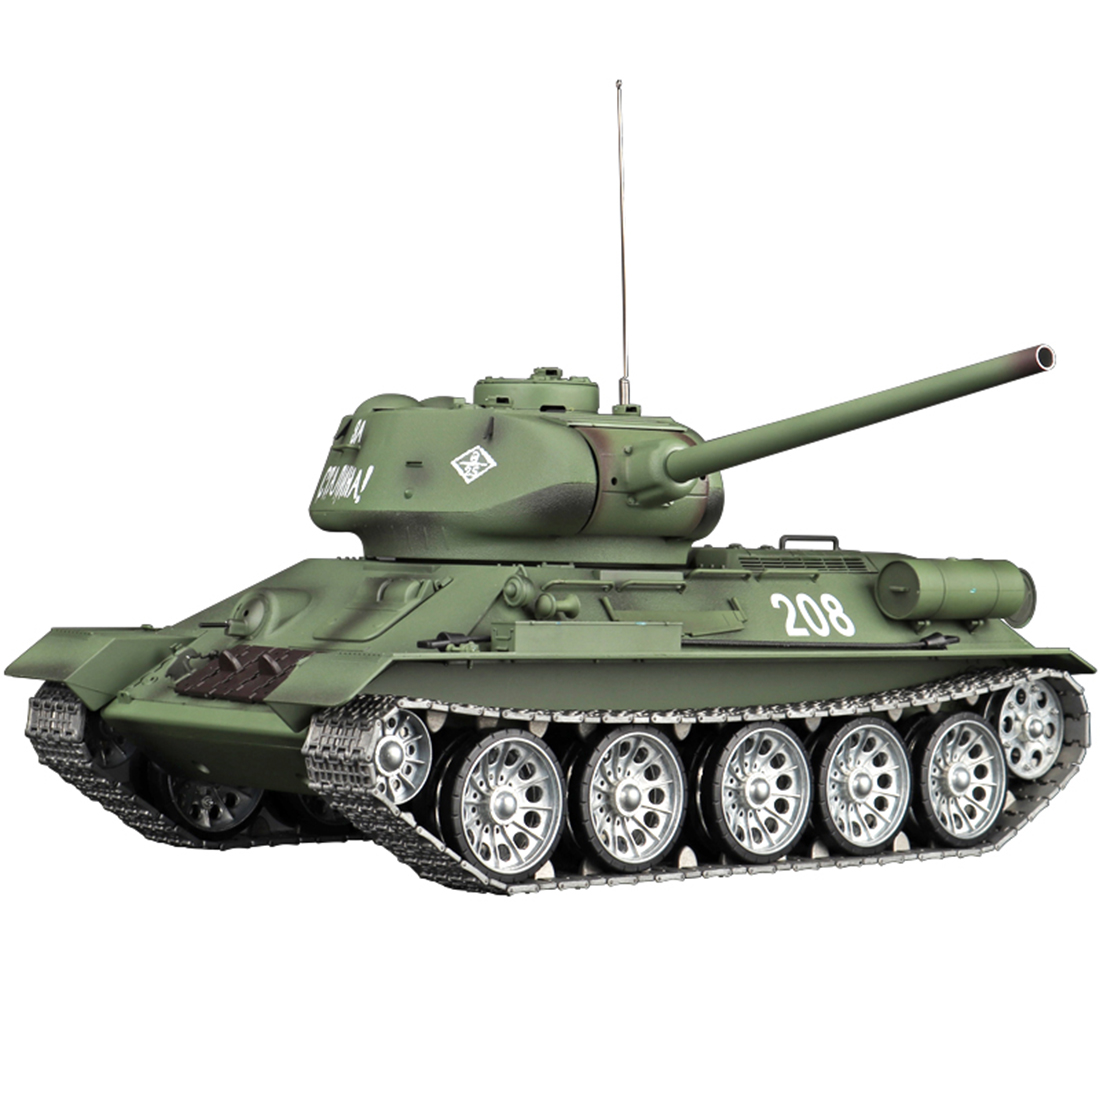 1:16 Soviet T-34 Medium Tank 2.4G Remote Control Model Military Tank with Sound Smoke Shooting Effect - Metal Ultimate Edition